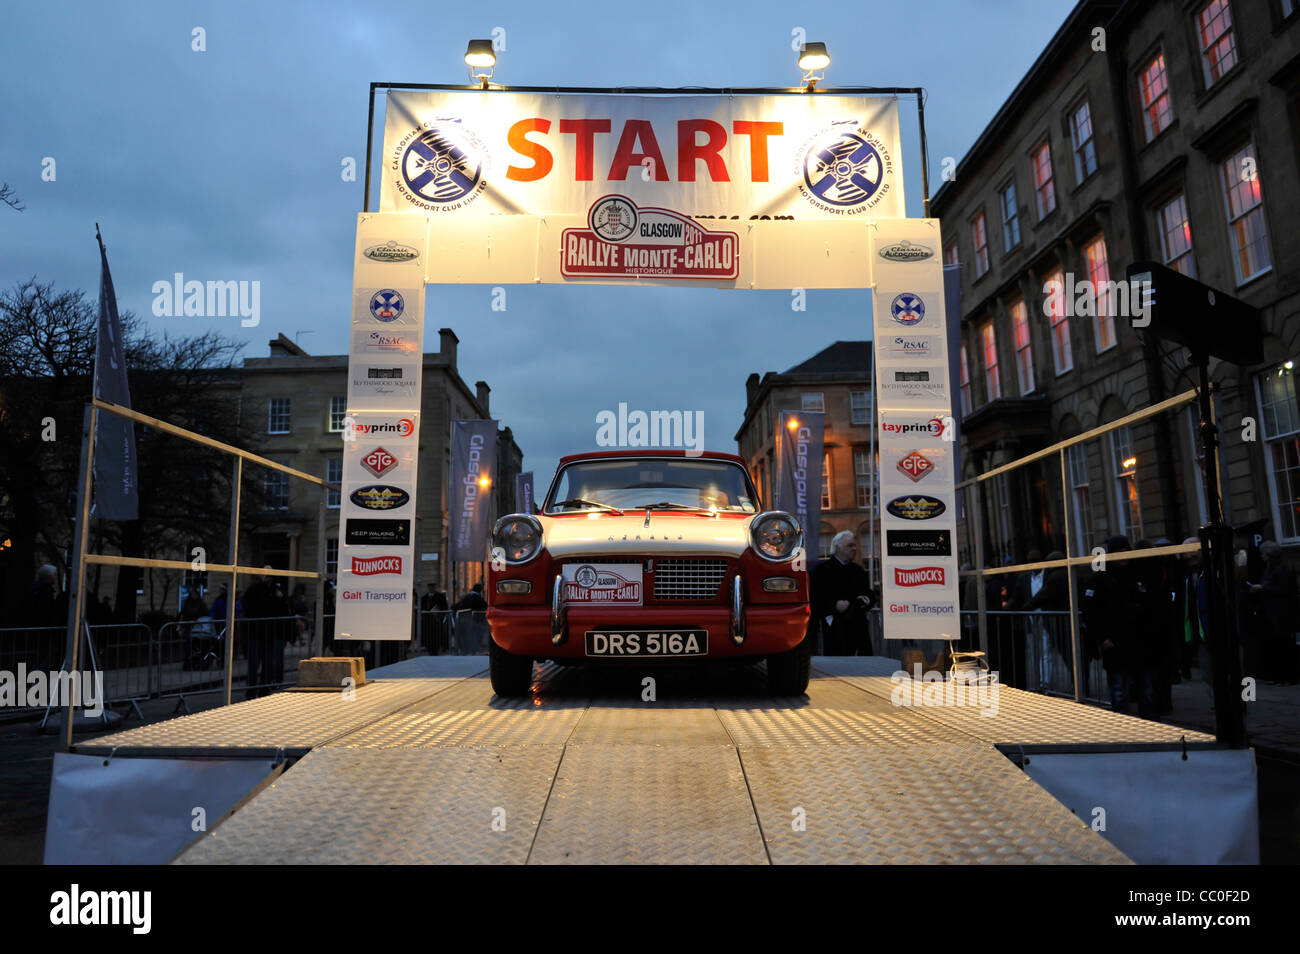 Cars leave Glasgow's George Square at the start of the historic Rallye Monte Carlo - Stock Image